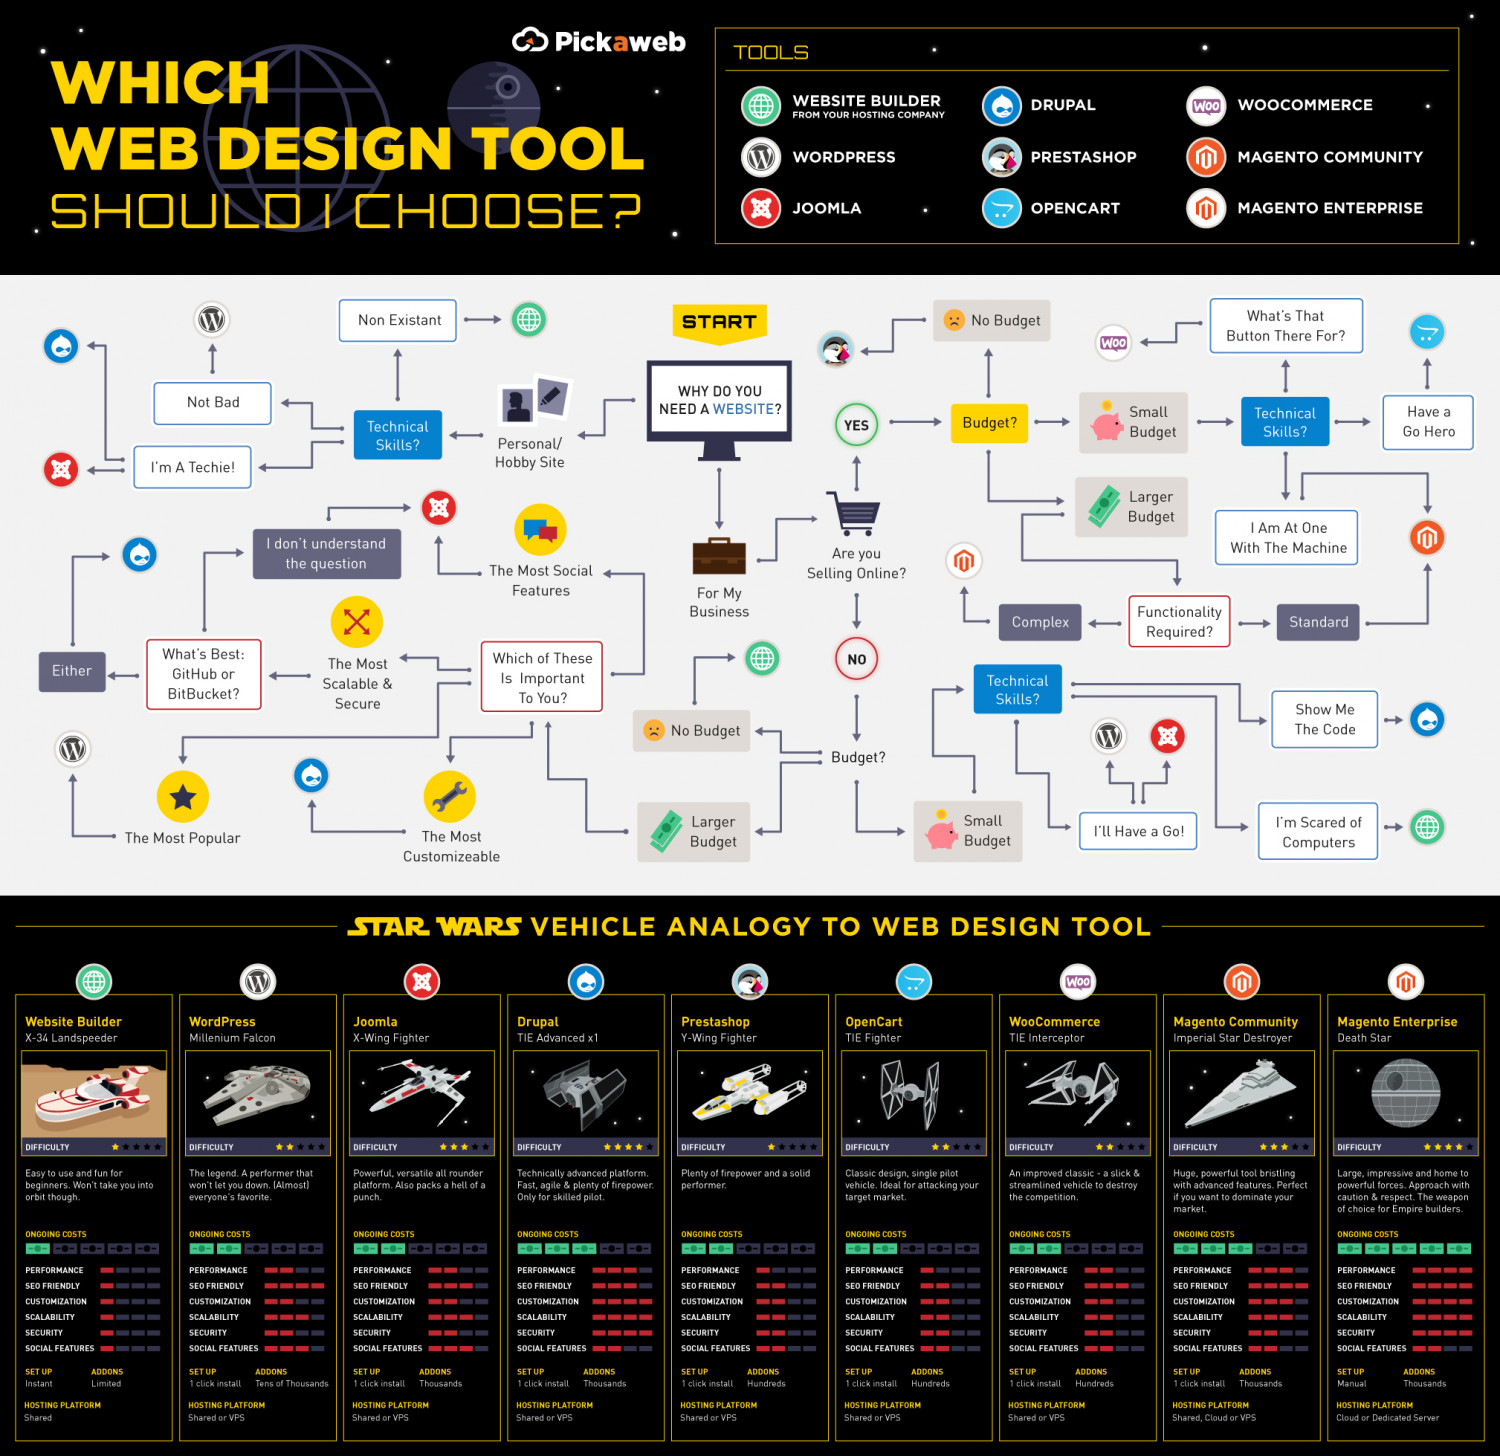 Different & CMS Tools To Build A Website  Infographic